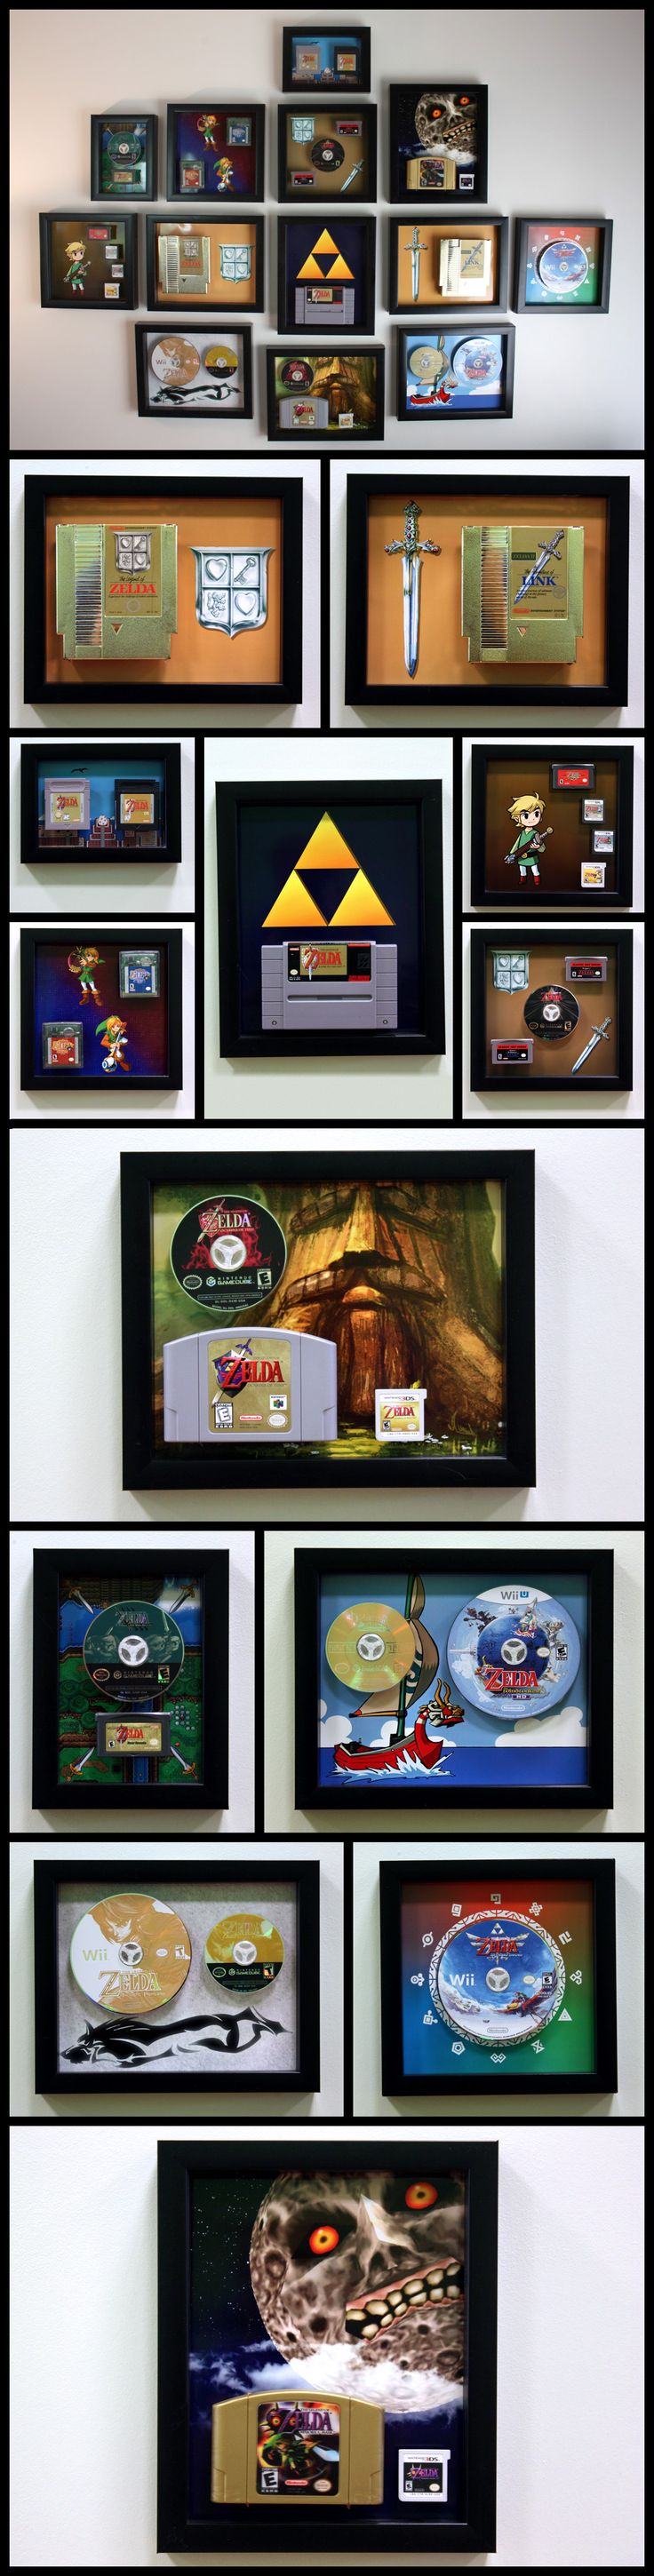 The entire Legend of Zelda video game series, mounted on the wall using custom 3D printed cartridge mounts. Creative display. http://linkedtothewall.com/ I want this so bad